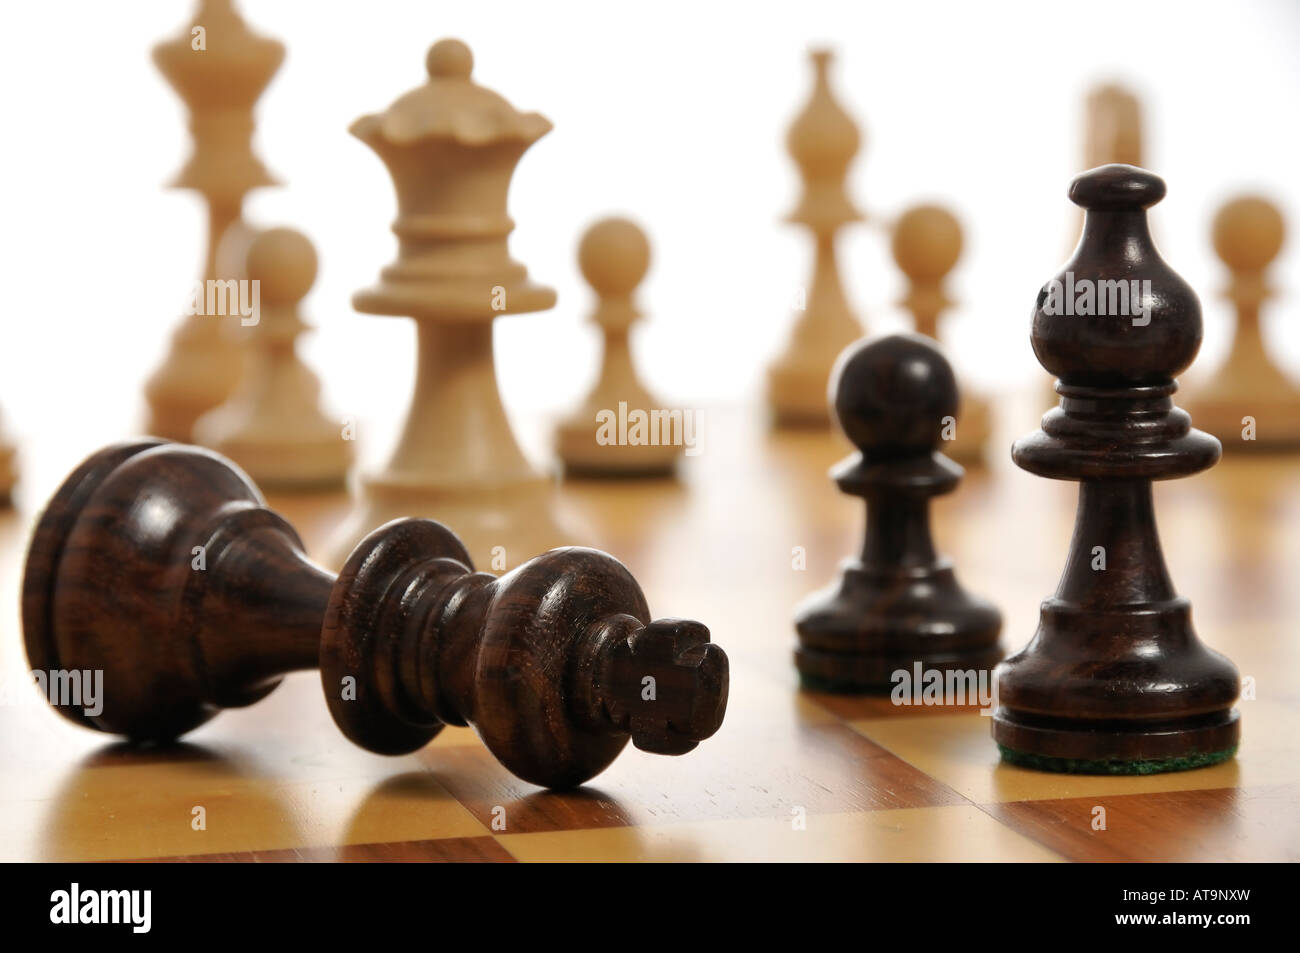 The black king surrendering on a chess board - Stock Image